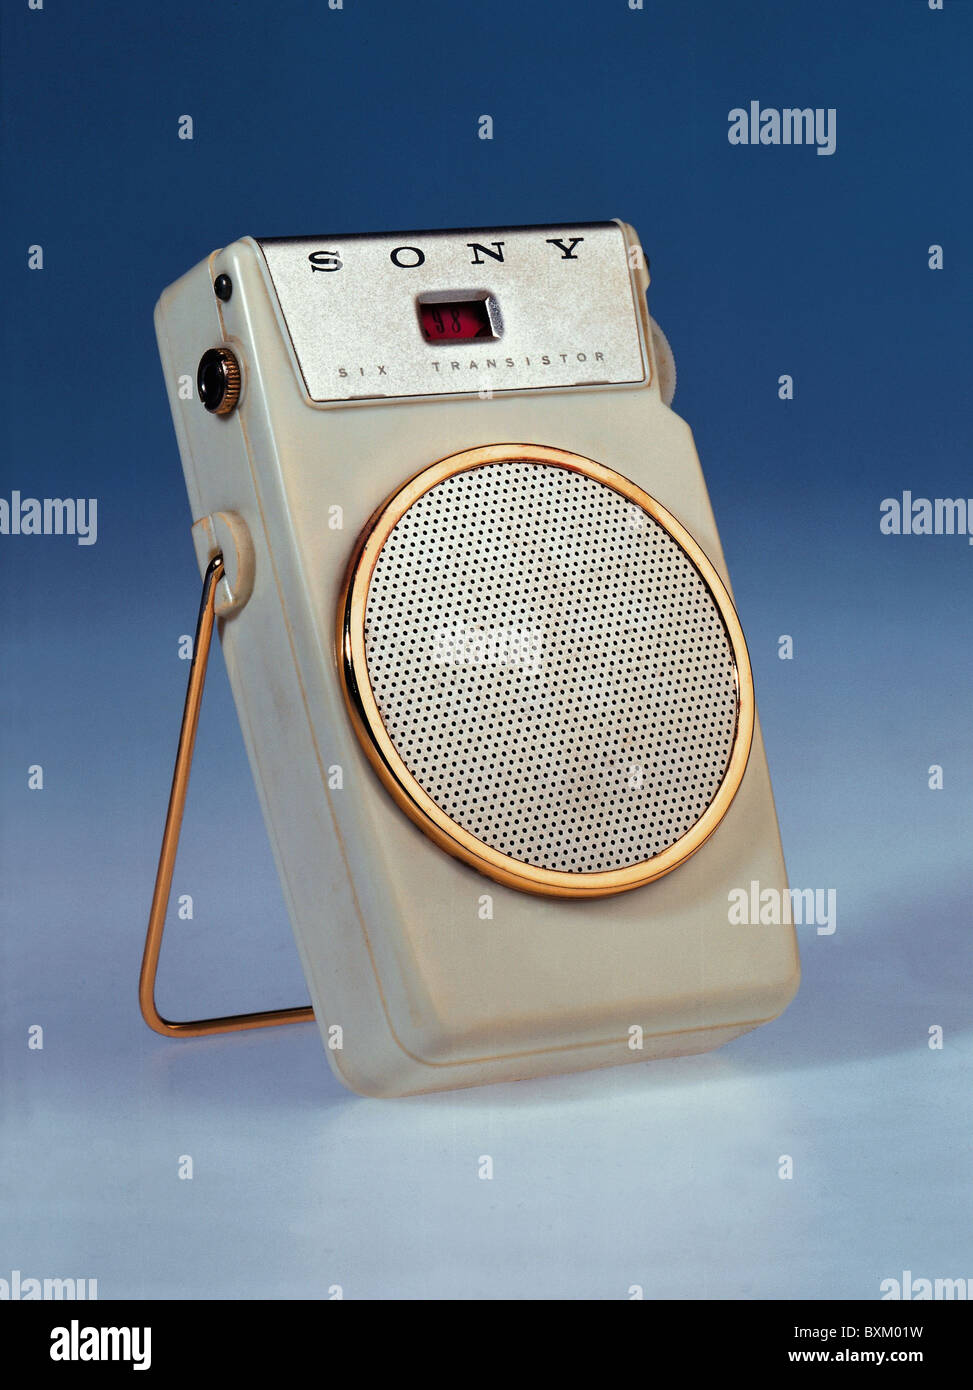 broadcast, radio, radio set Sony 'TR-610', Japan, 1958, Additional-Rights-Clearences-NA - Stock Image